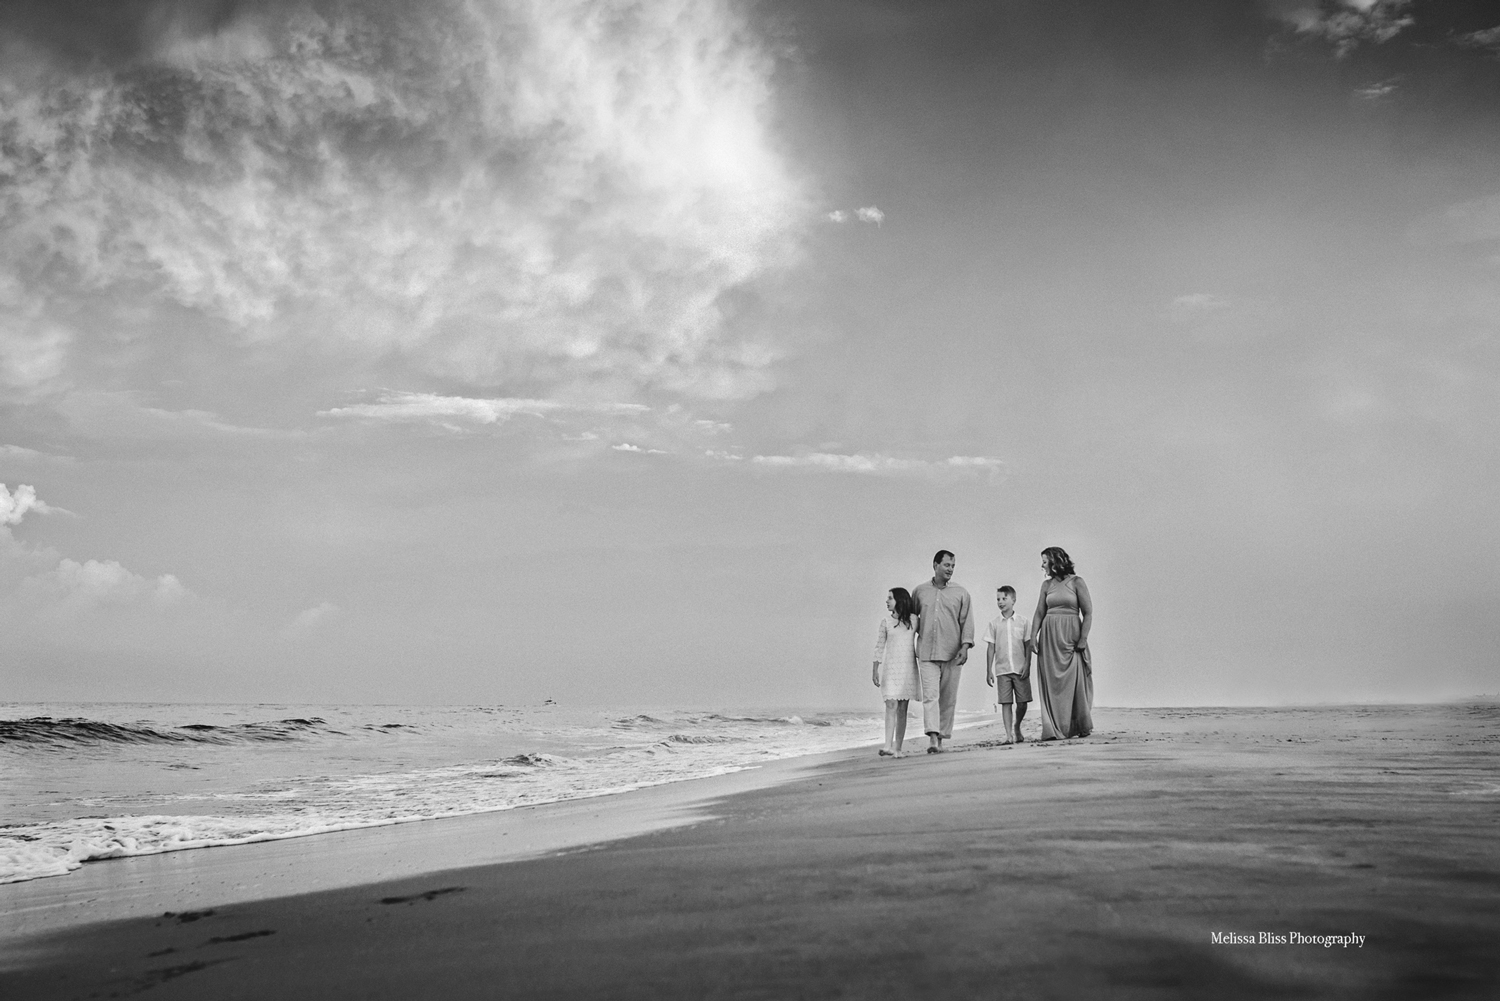 virginia-beach-family-photographer-melissa-bliss-photography-fine-art-famiy-photo-session-on-the-beach-black-and-white-beach-picture.jpg